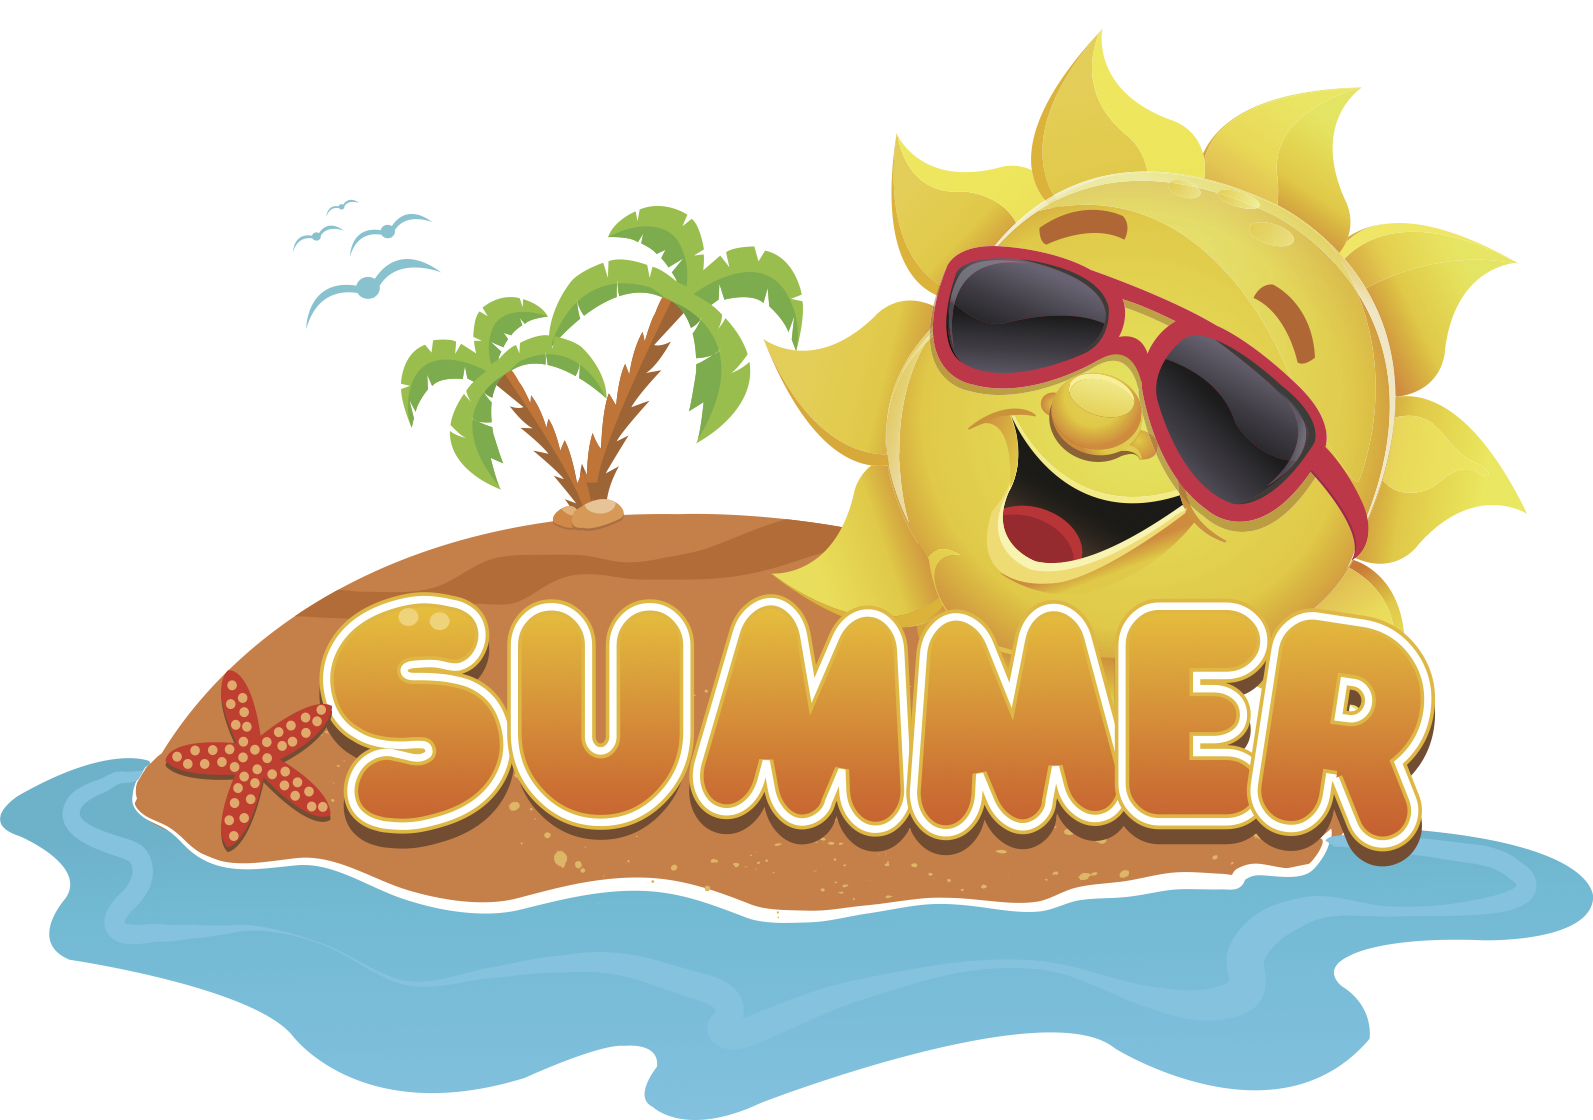 16 Jul Great Fun Activities For Summer With The Kids